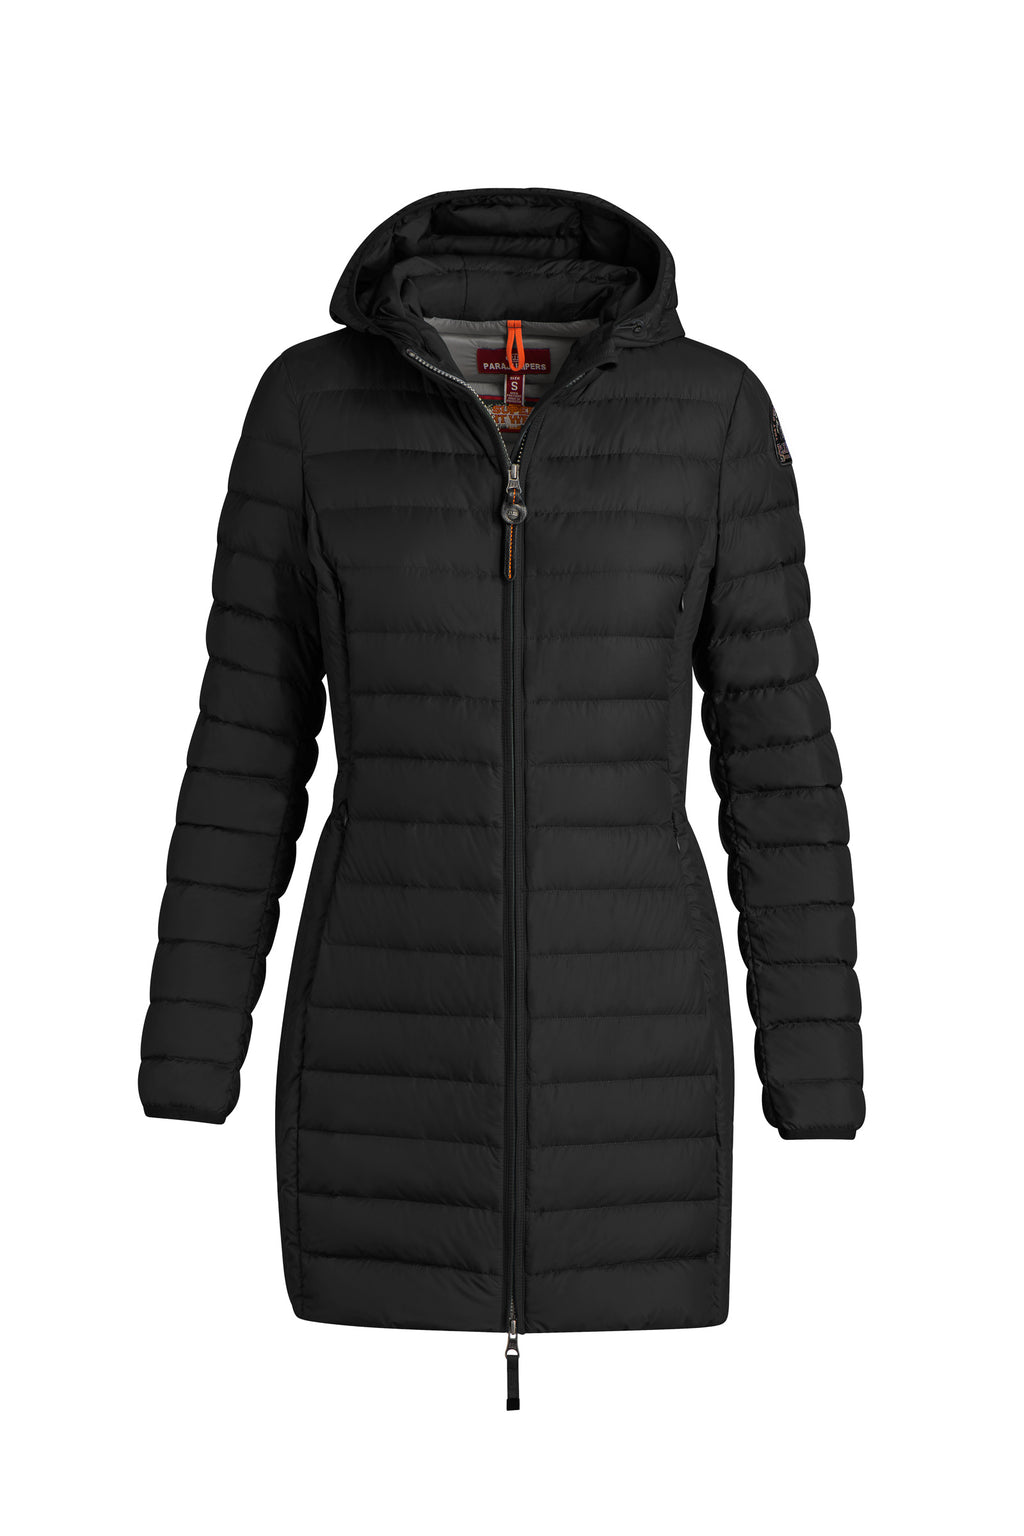 Parajumpers Irene Jacket in Black